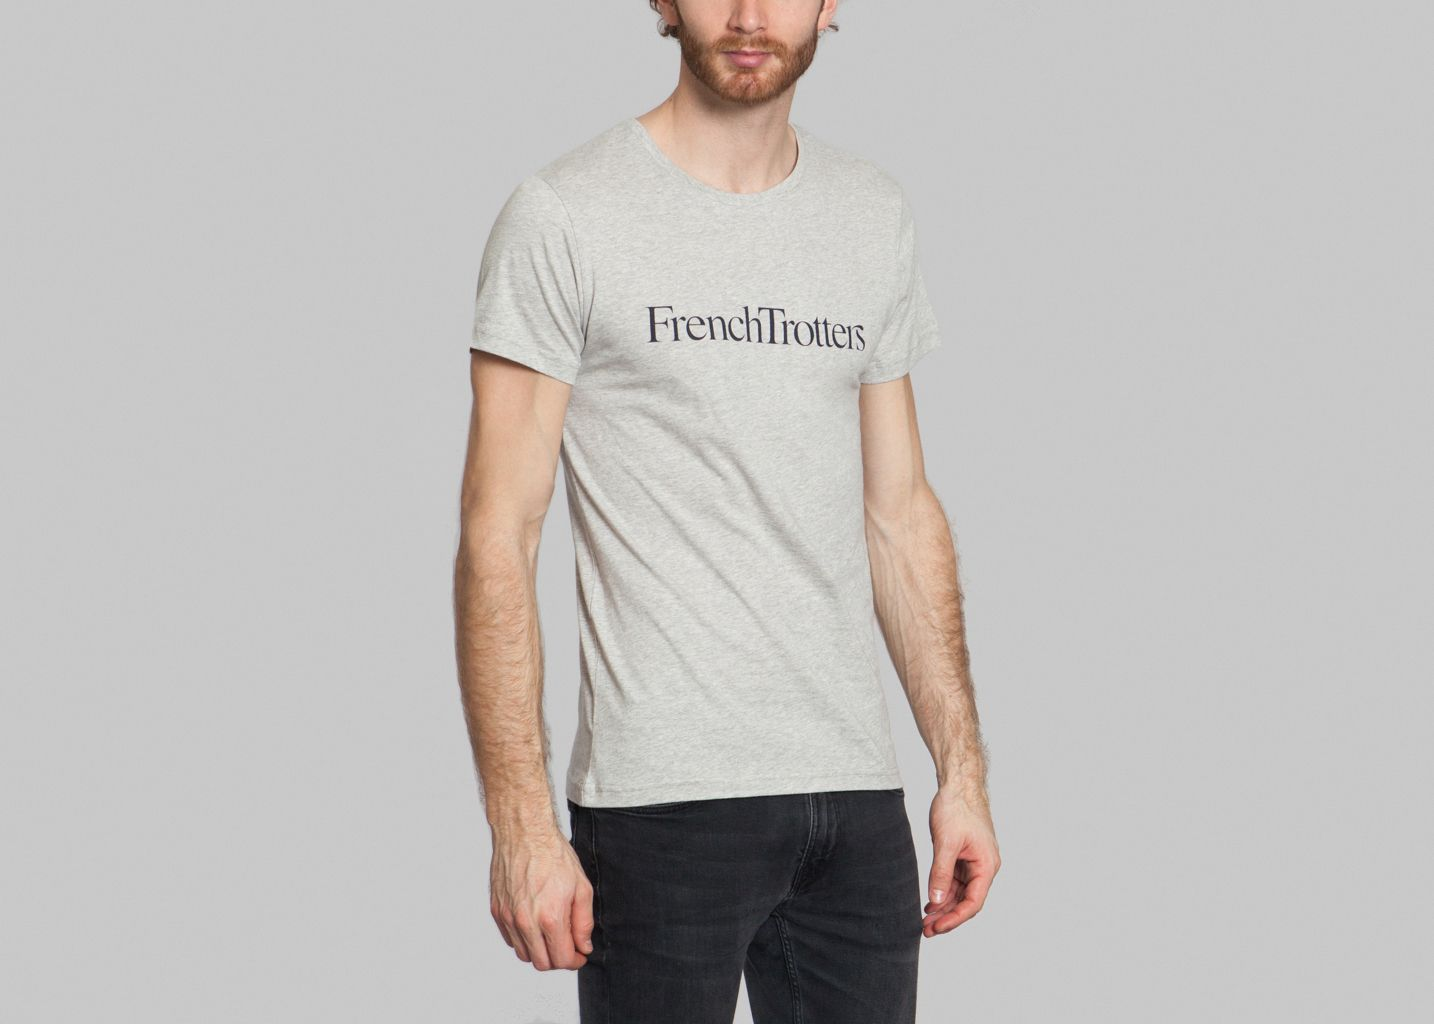 Mark FT T-Shirt - FrenchTrotters